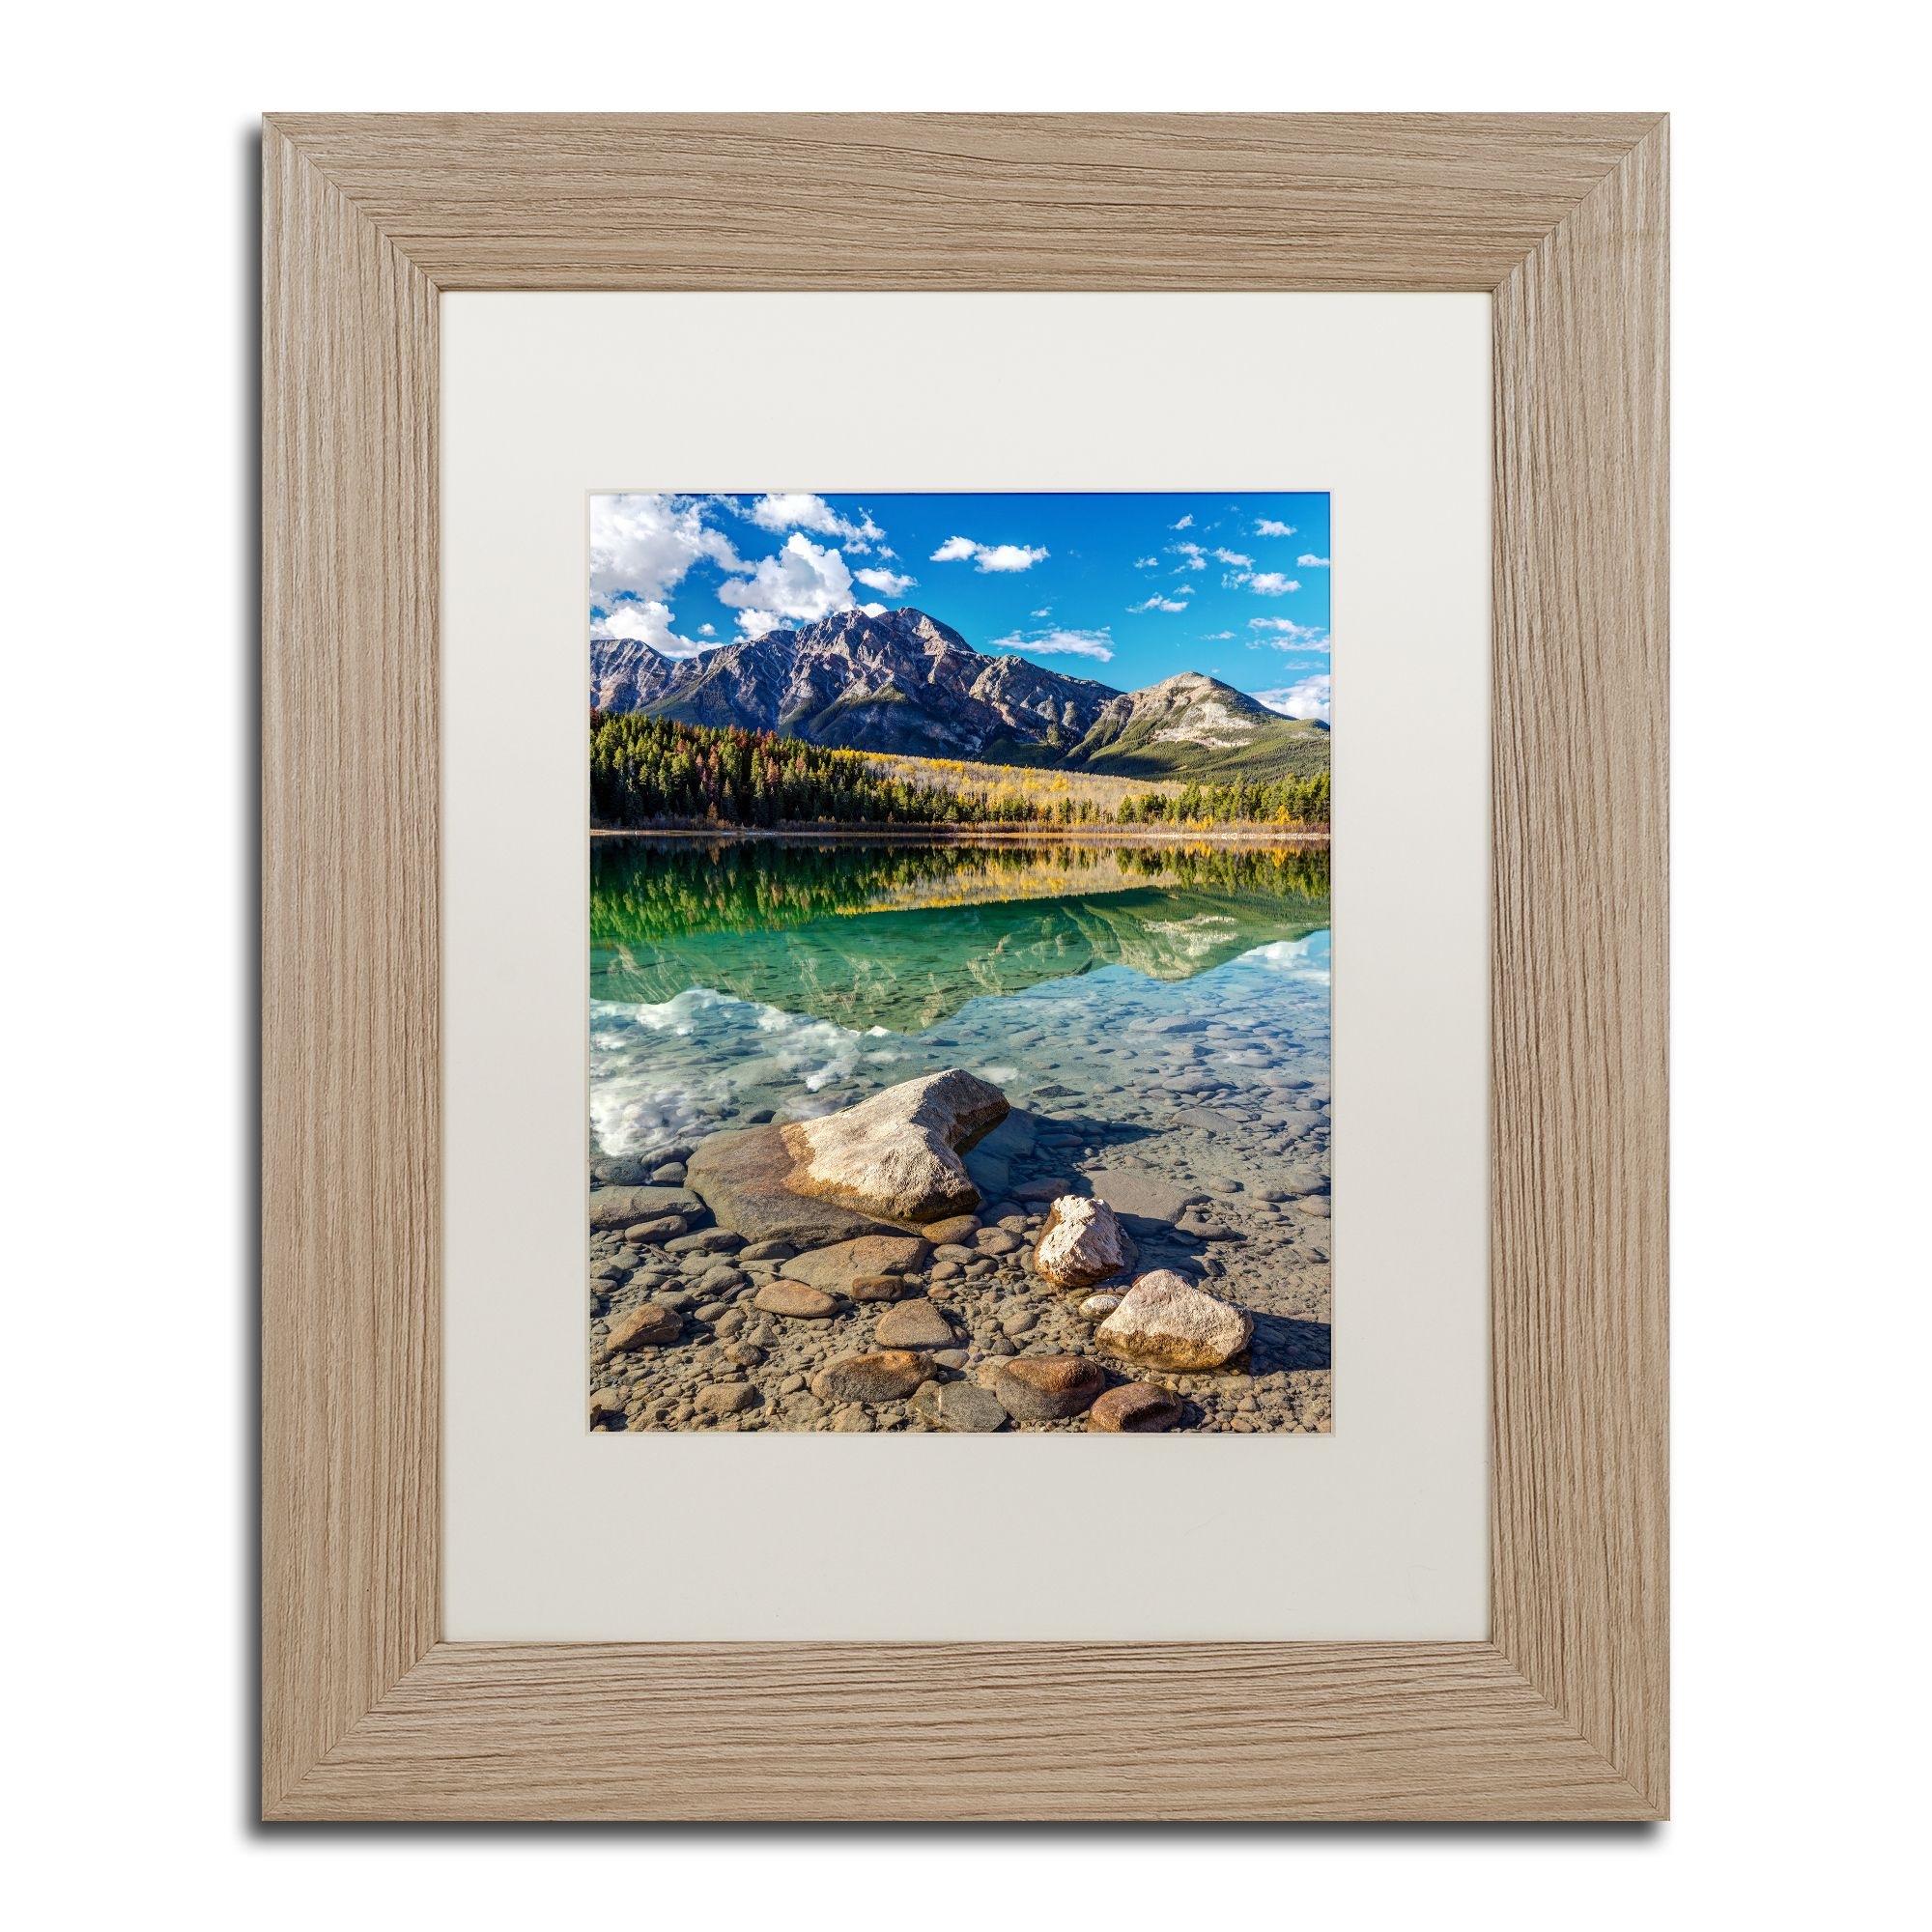 Pierre Leclerc 'Pyramid Mountain Reflection' Matted Framed Art